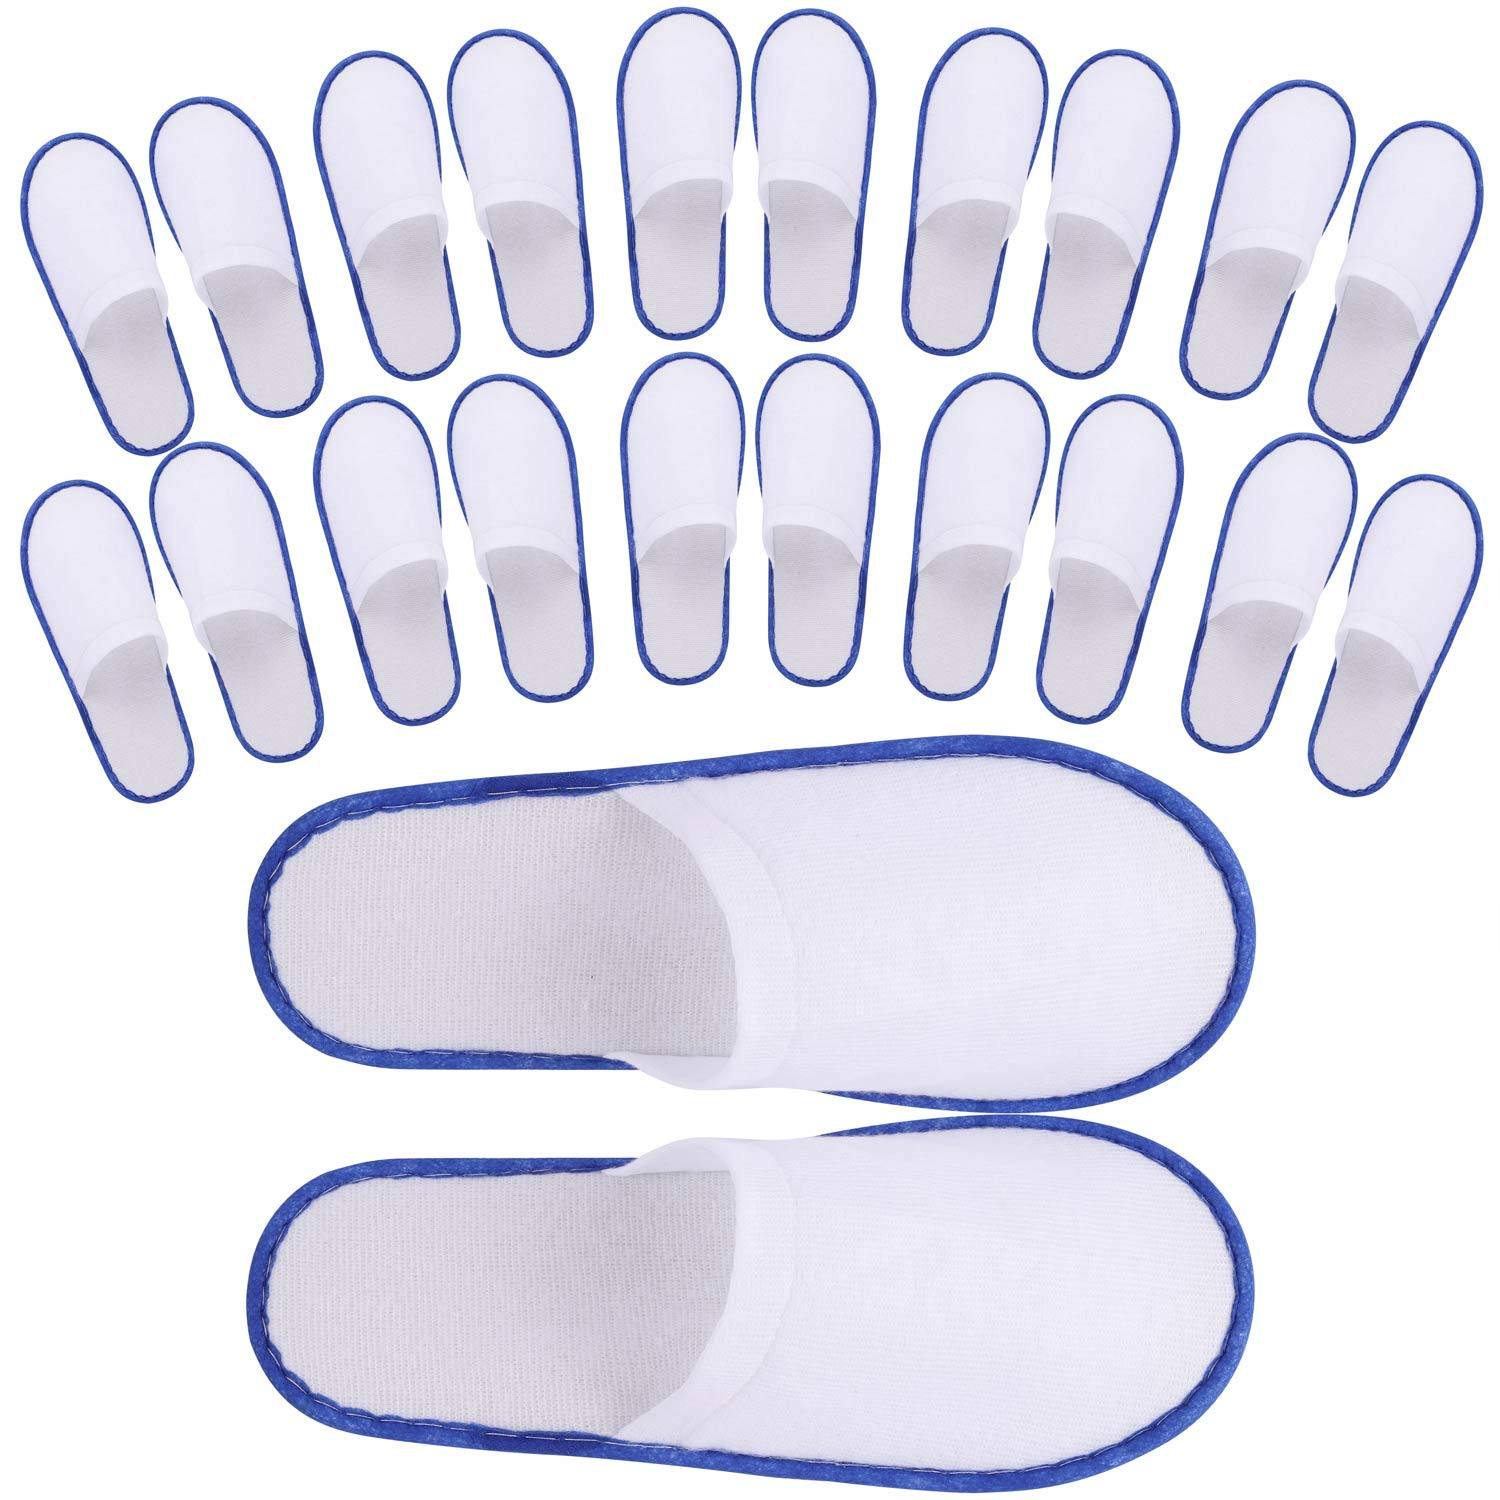 24 Pair Spa Flip Flops Disposable Slippers for Hotel Guests Women, Men Closed Toe Super Comfort by Tbestmax